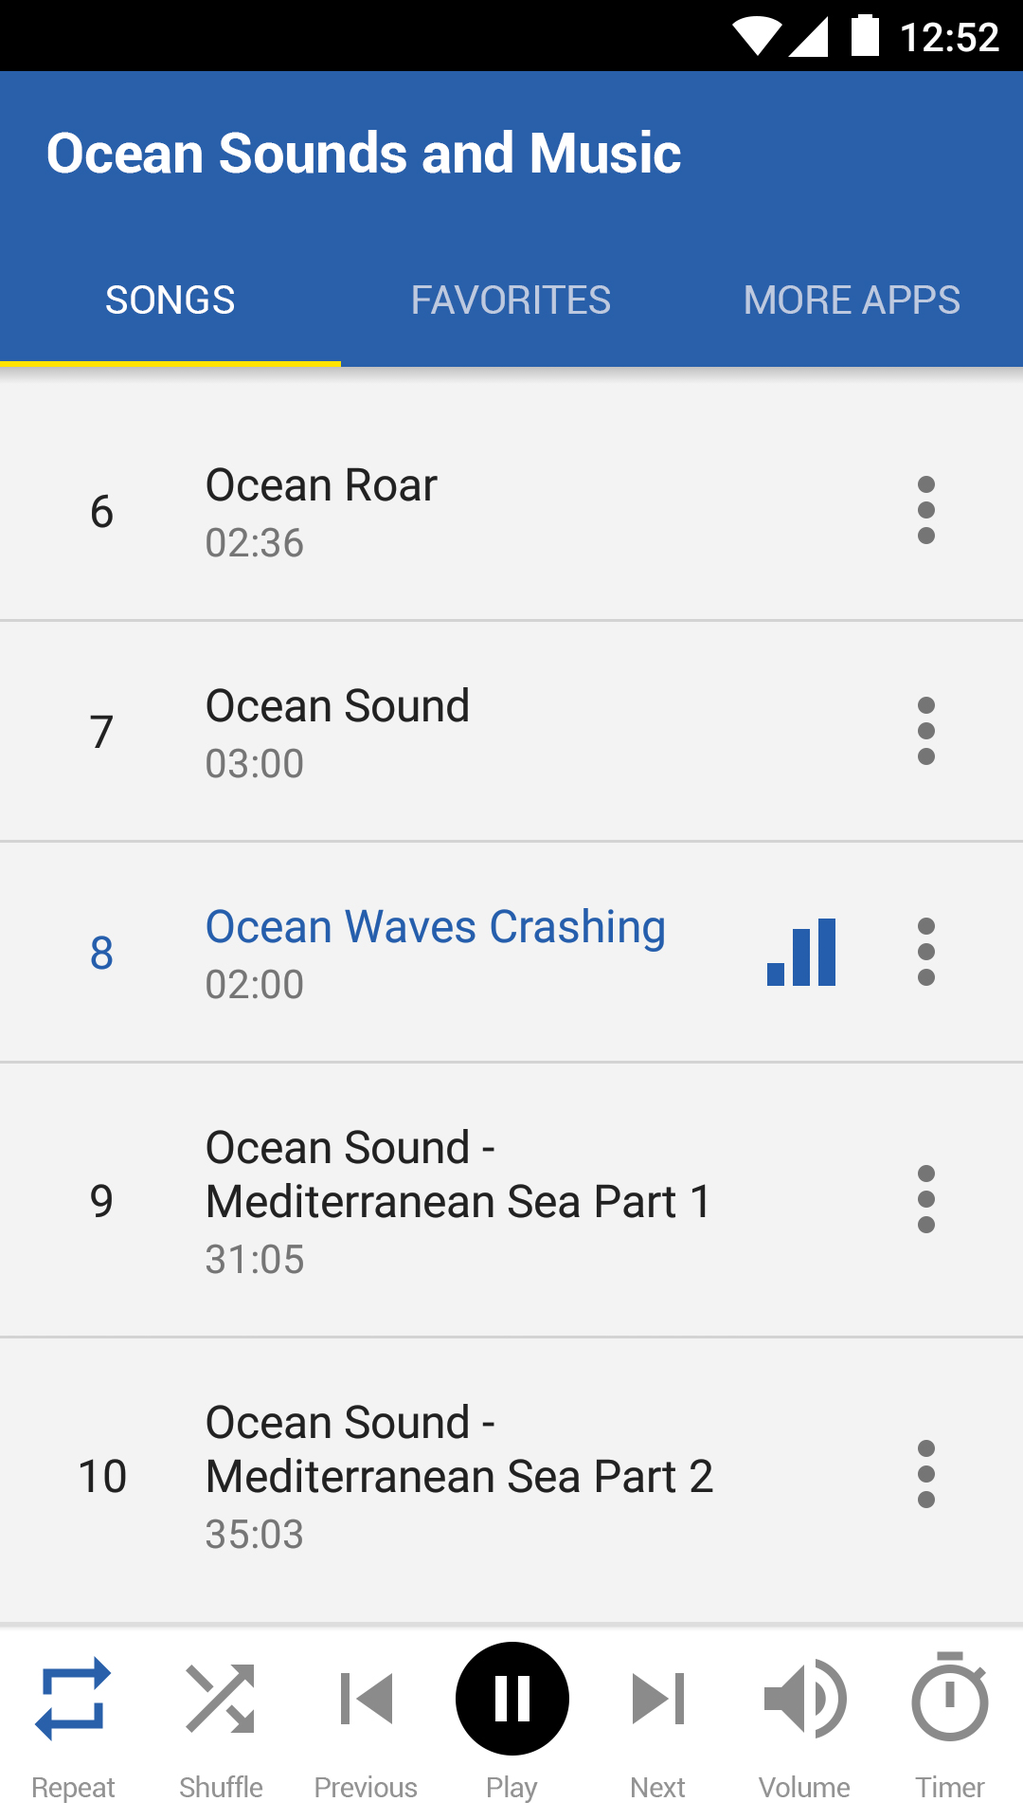 Ocean Sounds and Music Screenshot 2